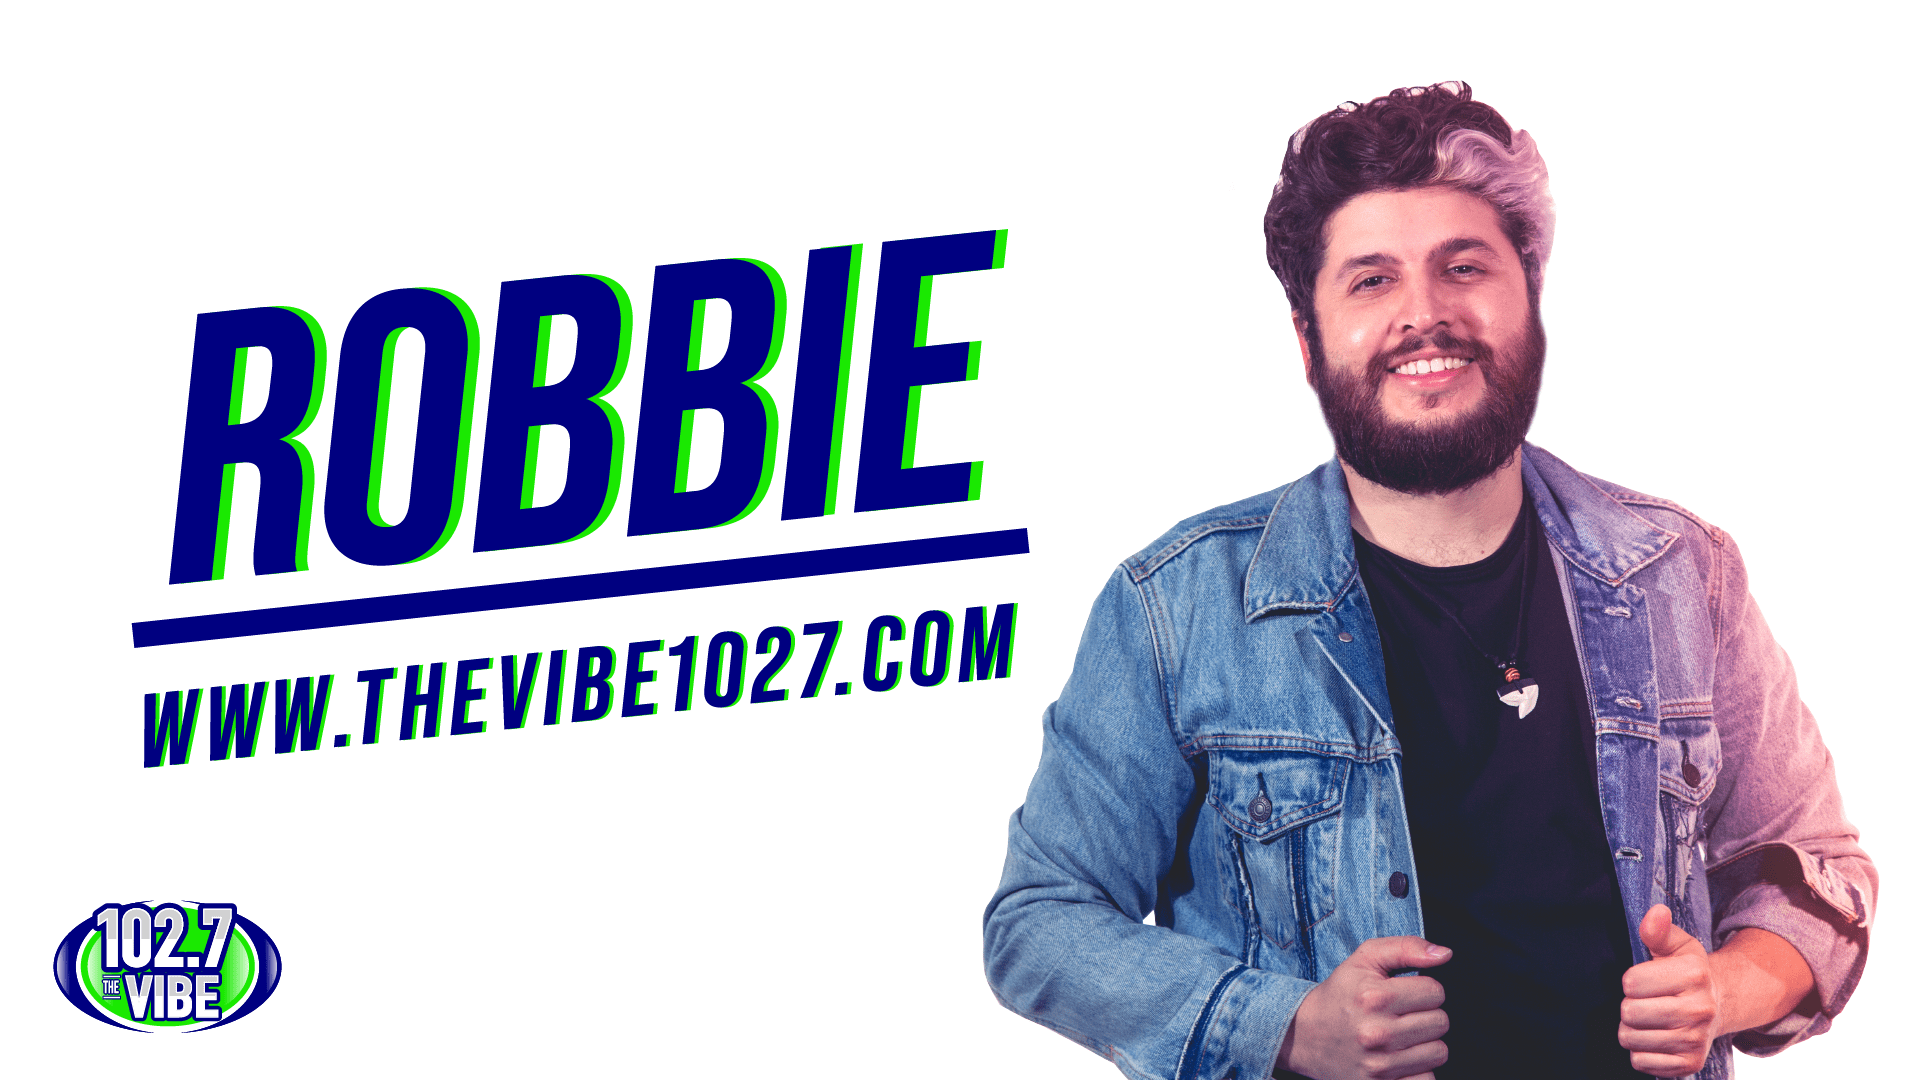 Robbie on The Vibe